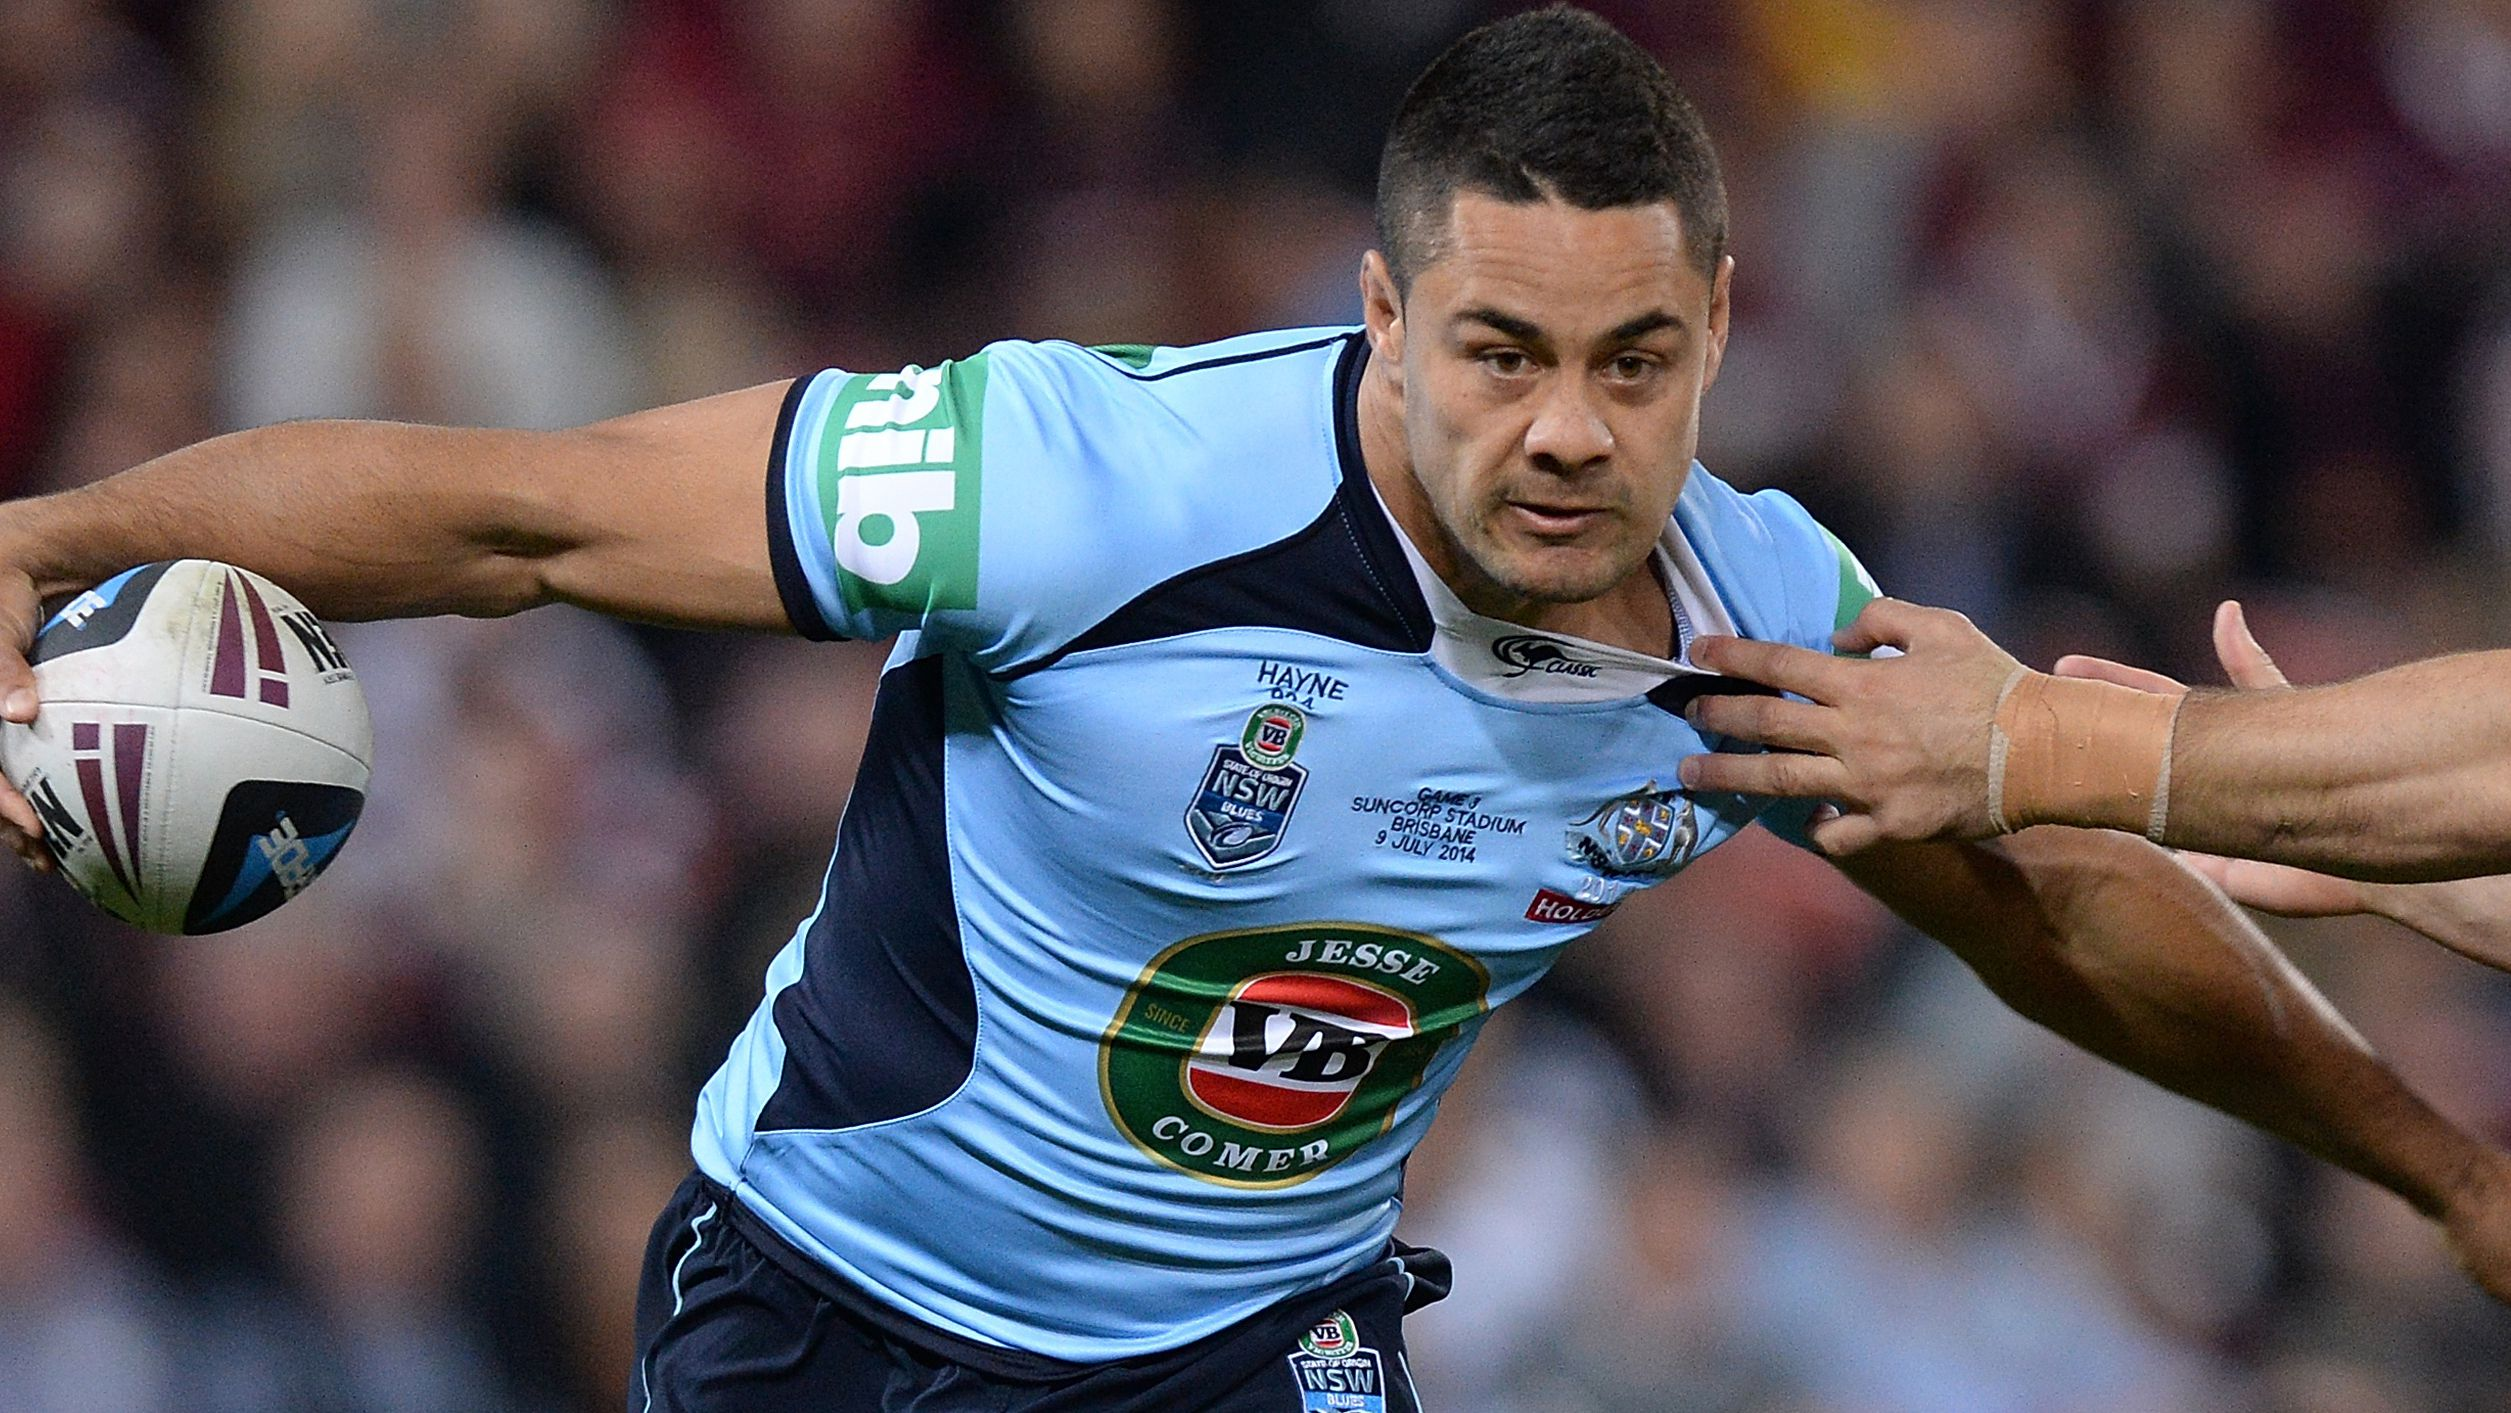 Jarryd Hayne starred for NSW.